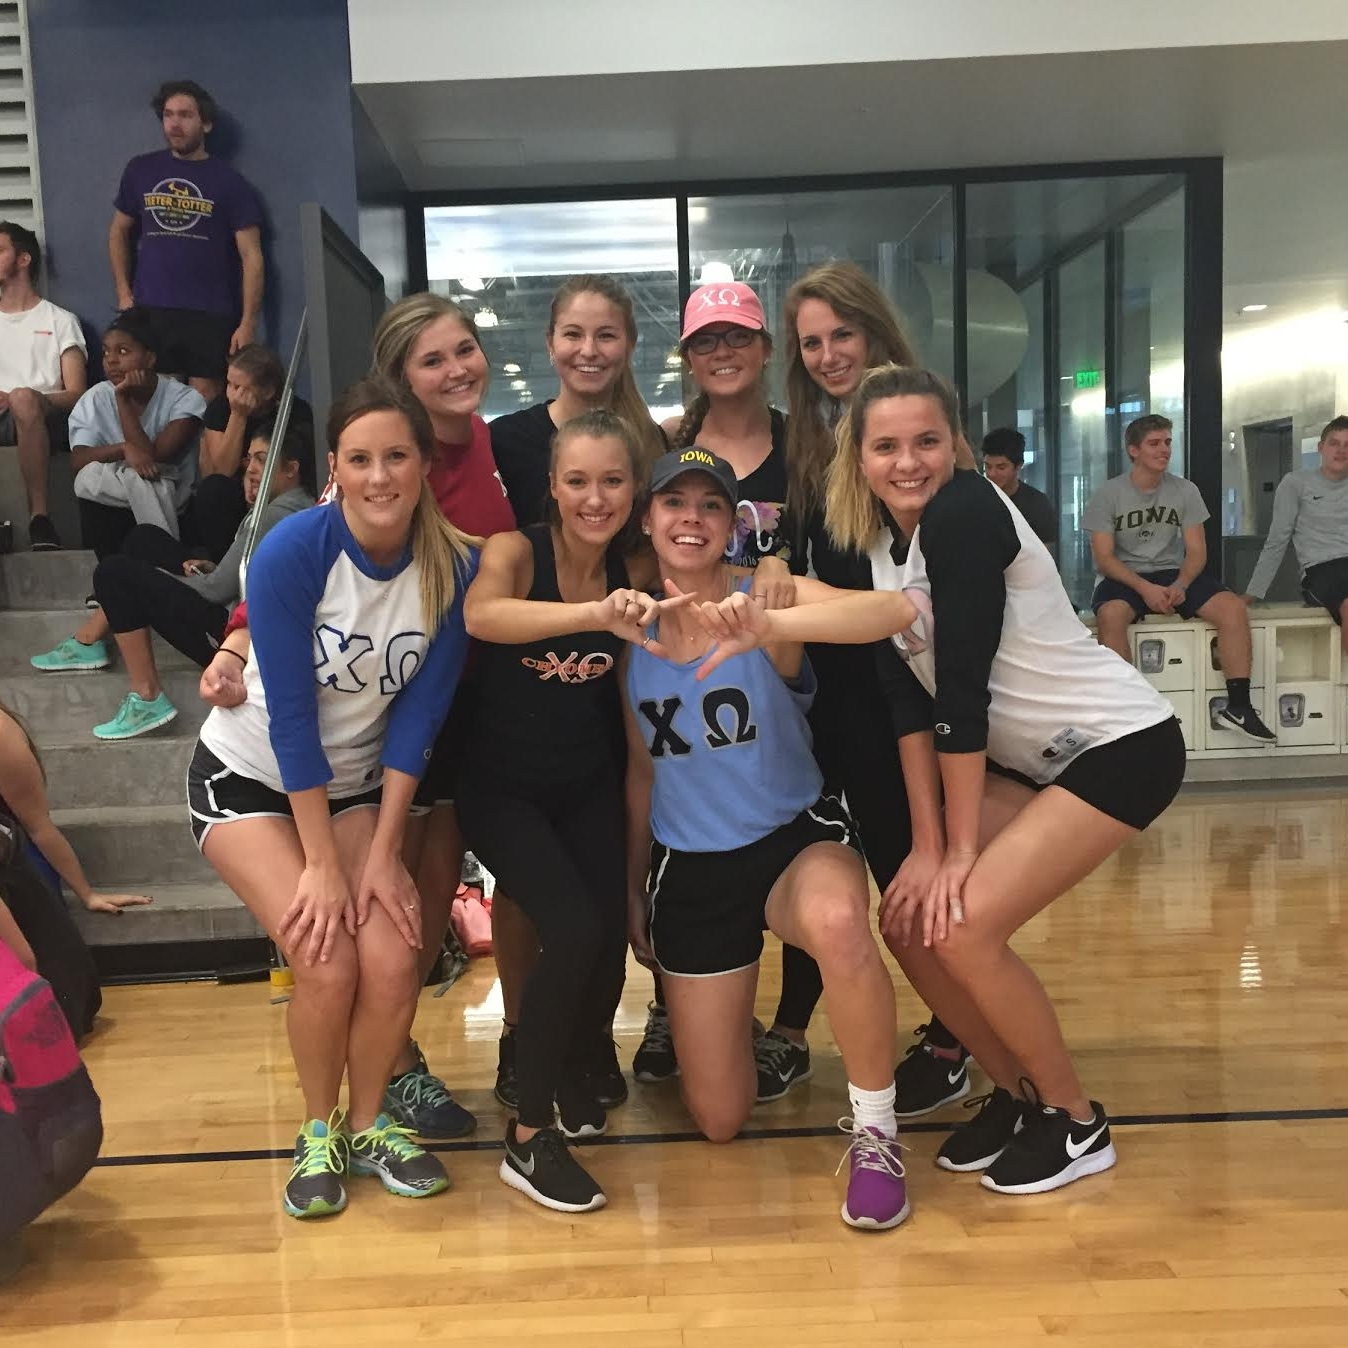 iowa-homecoming-week-ruckus-at-the-rec-chi-omega